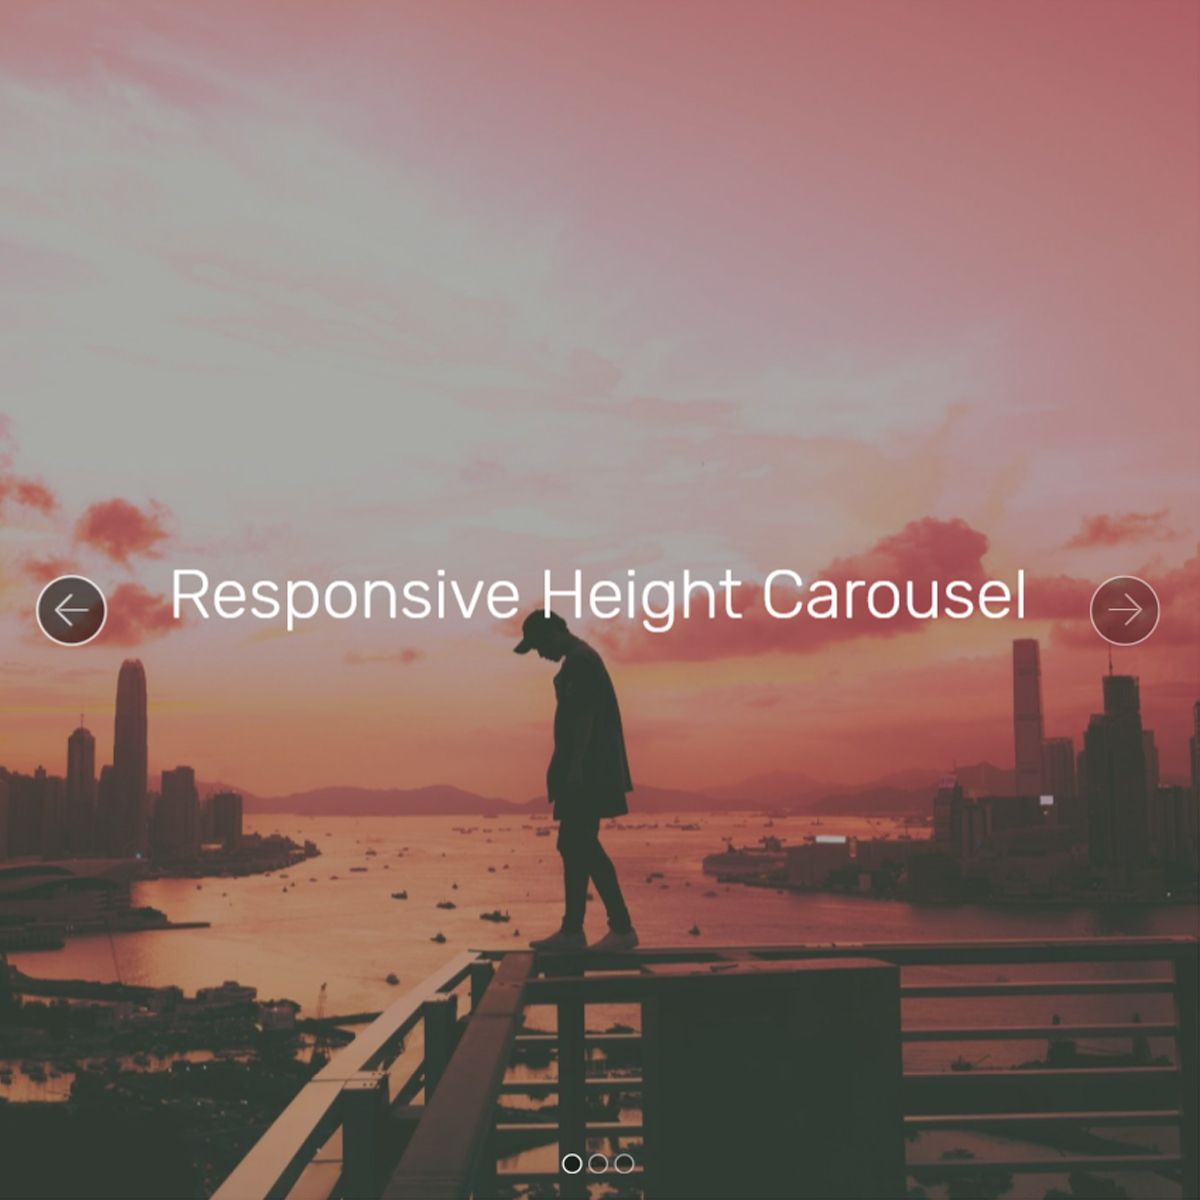 Responsive Bootstrap Picture Carousel